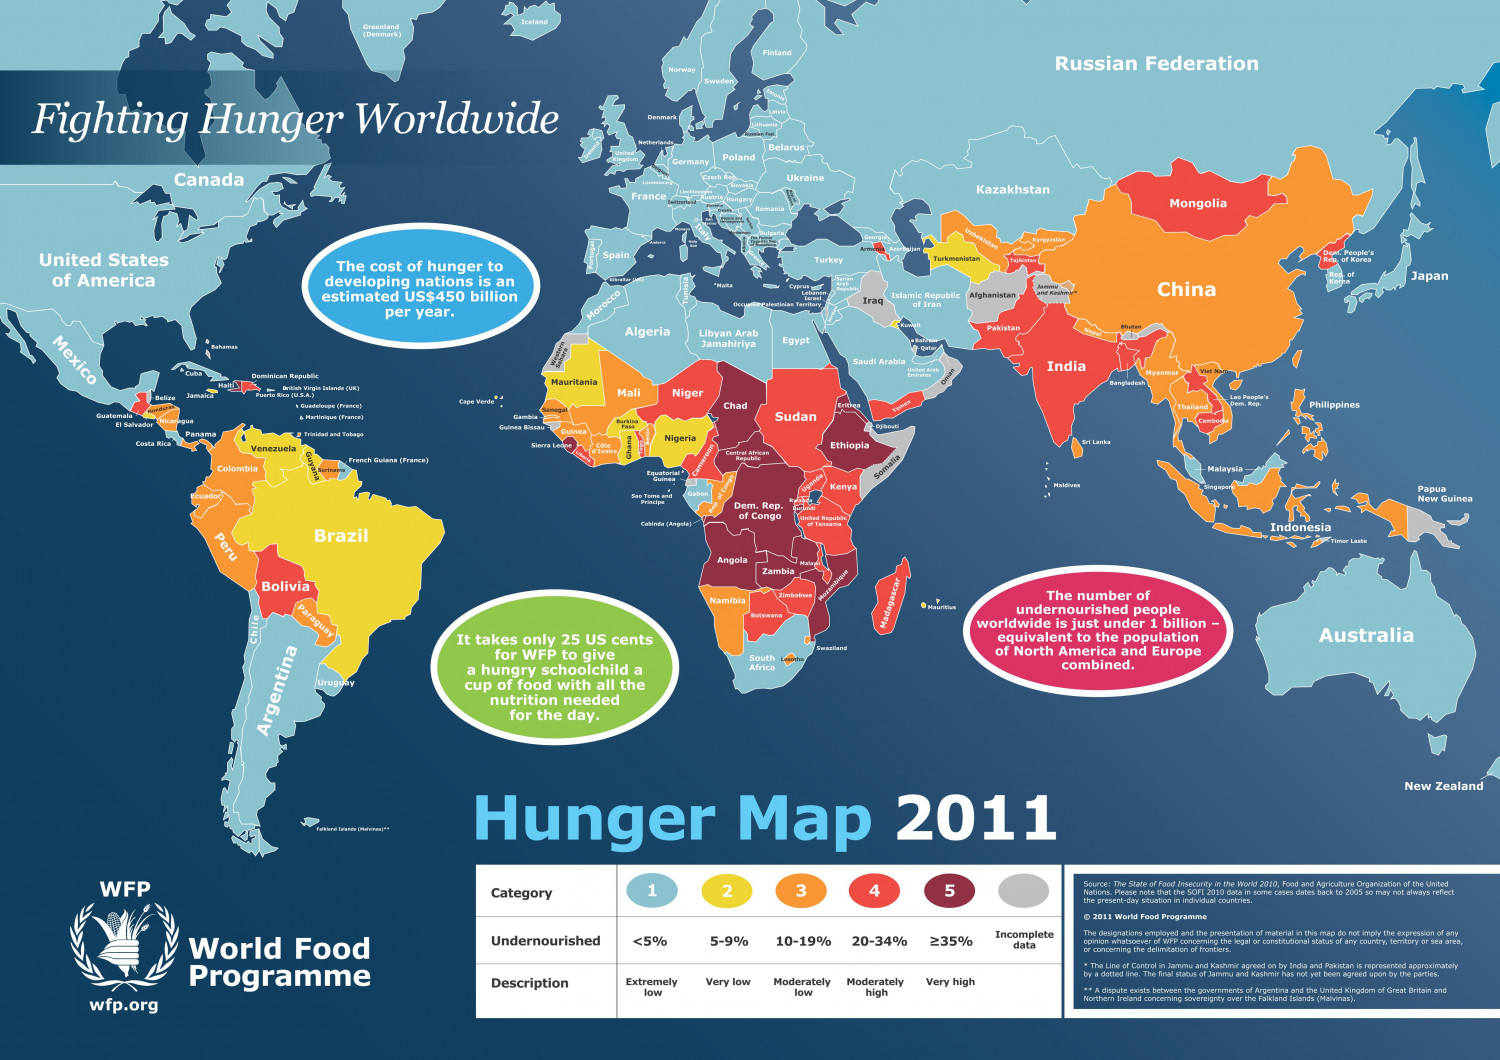 Fighting Hunger Worldwide Infographic